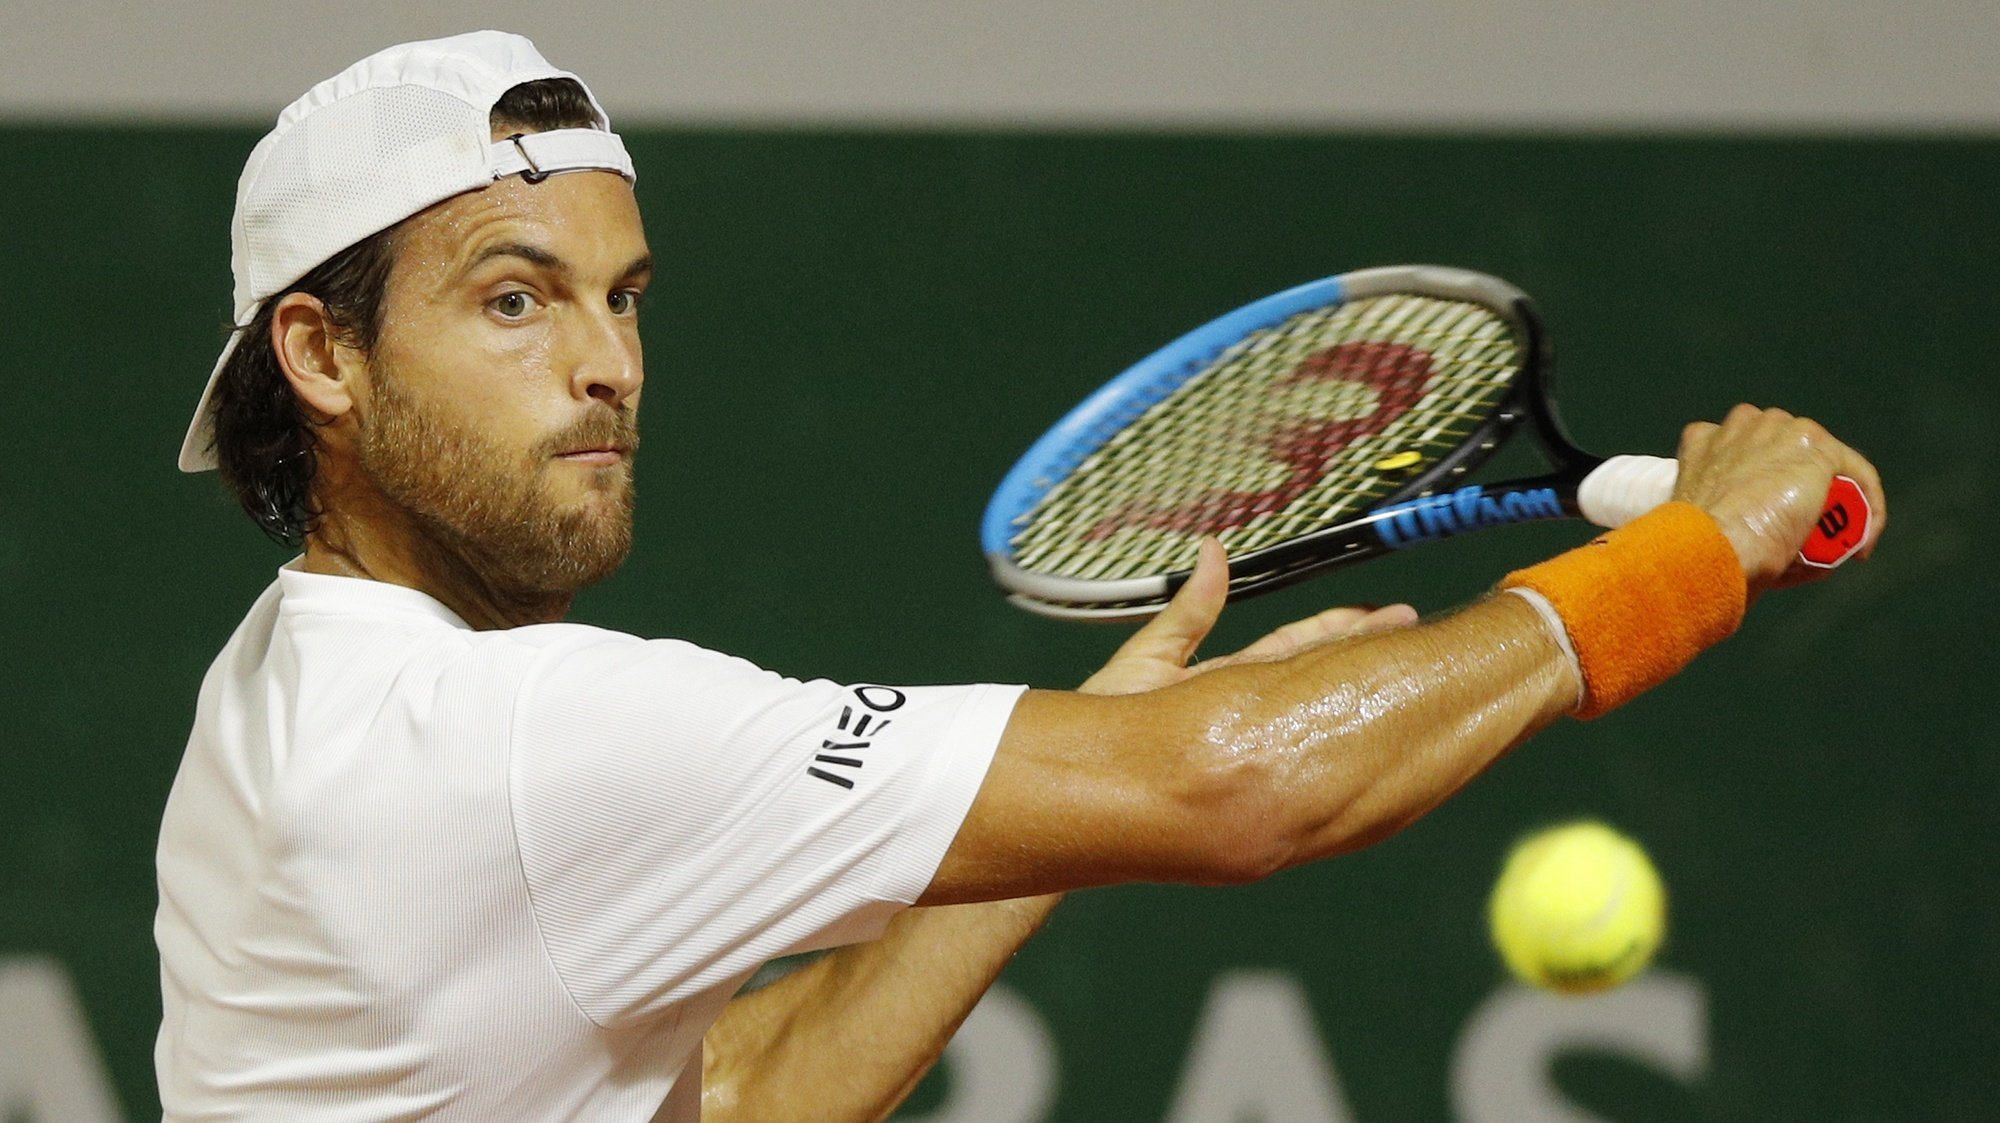 epa08706518 Joao Sousa of Portugal eyes the ball during his first round match against Andrej Martin of Slovakia at the French Open tennis tournament at Roland Garros in Paris, France, 29 September 2020.  EPA/YOAN VALAT